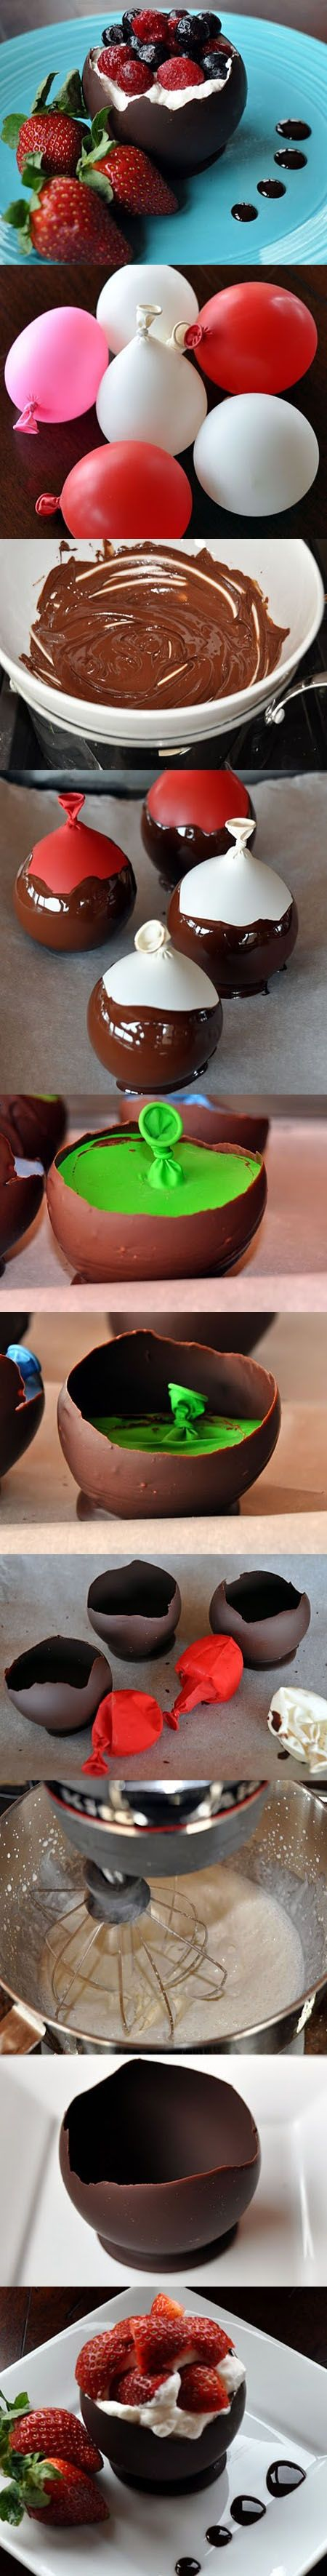 Amazing Chocolate Bowl